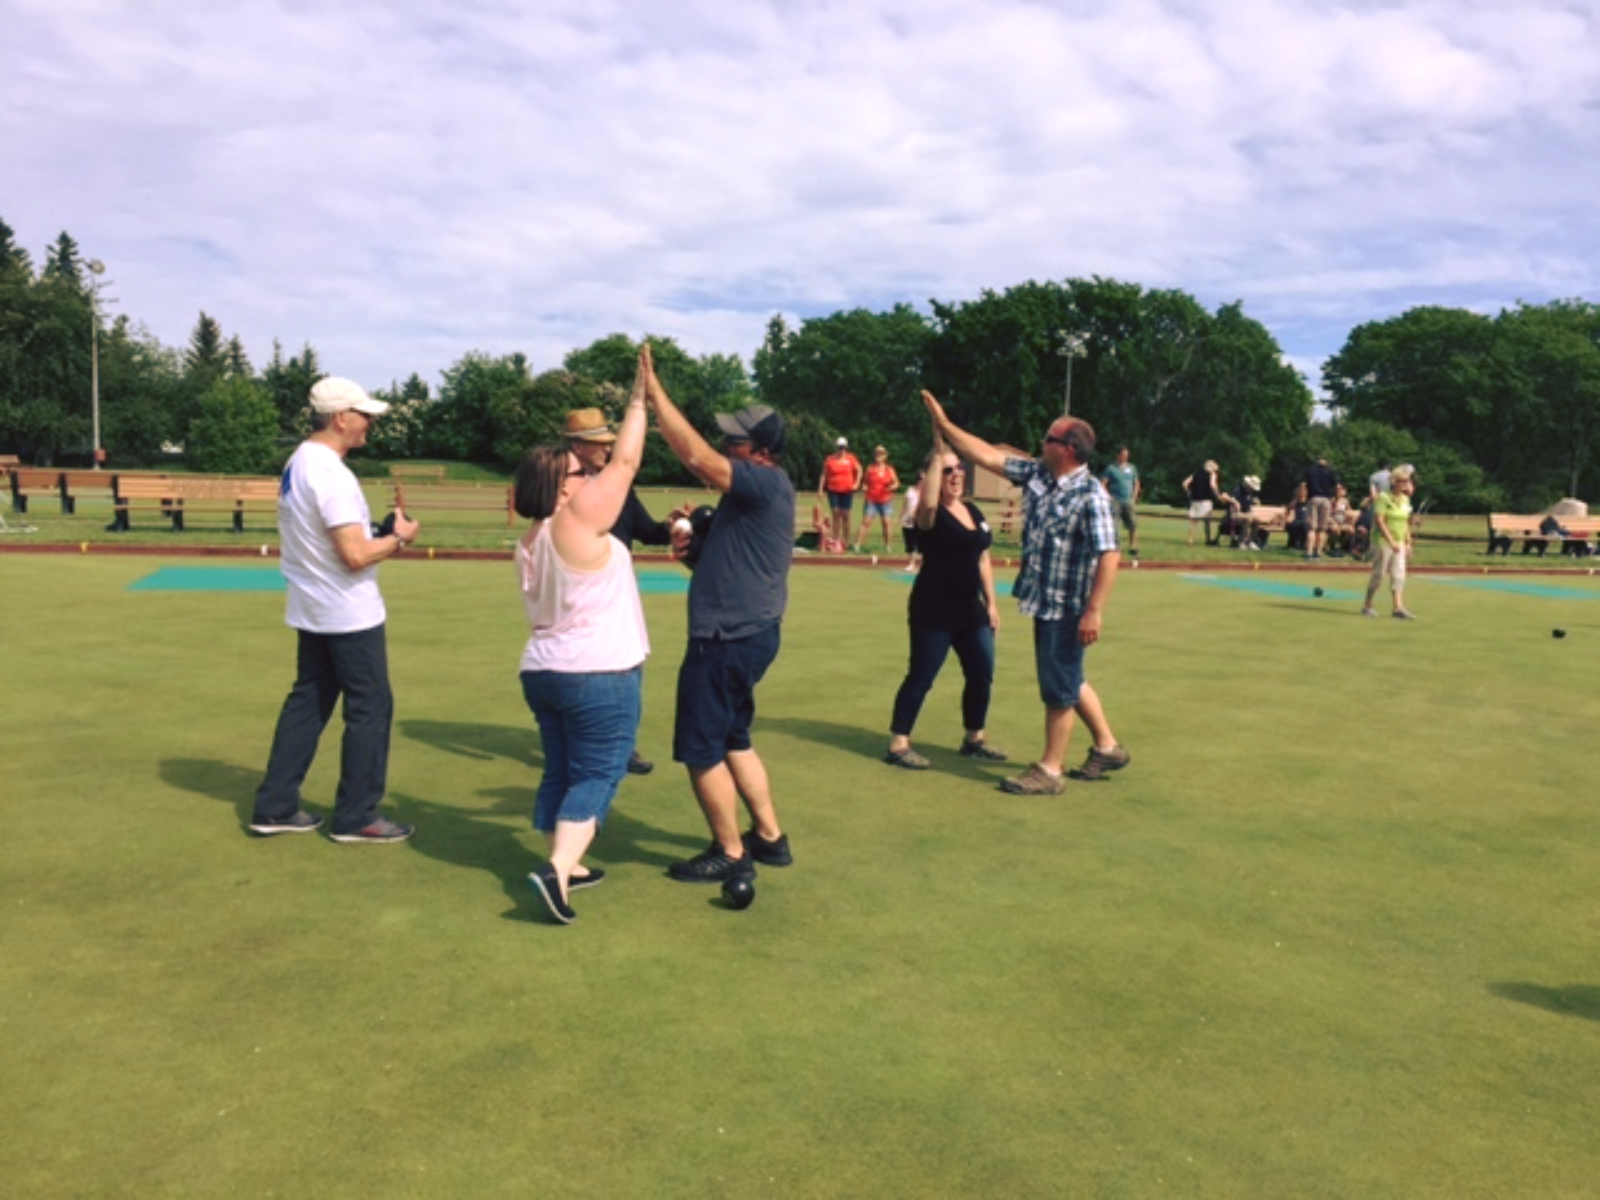 Lawn bowlers high-fiving on a green